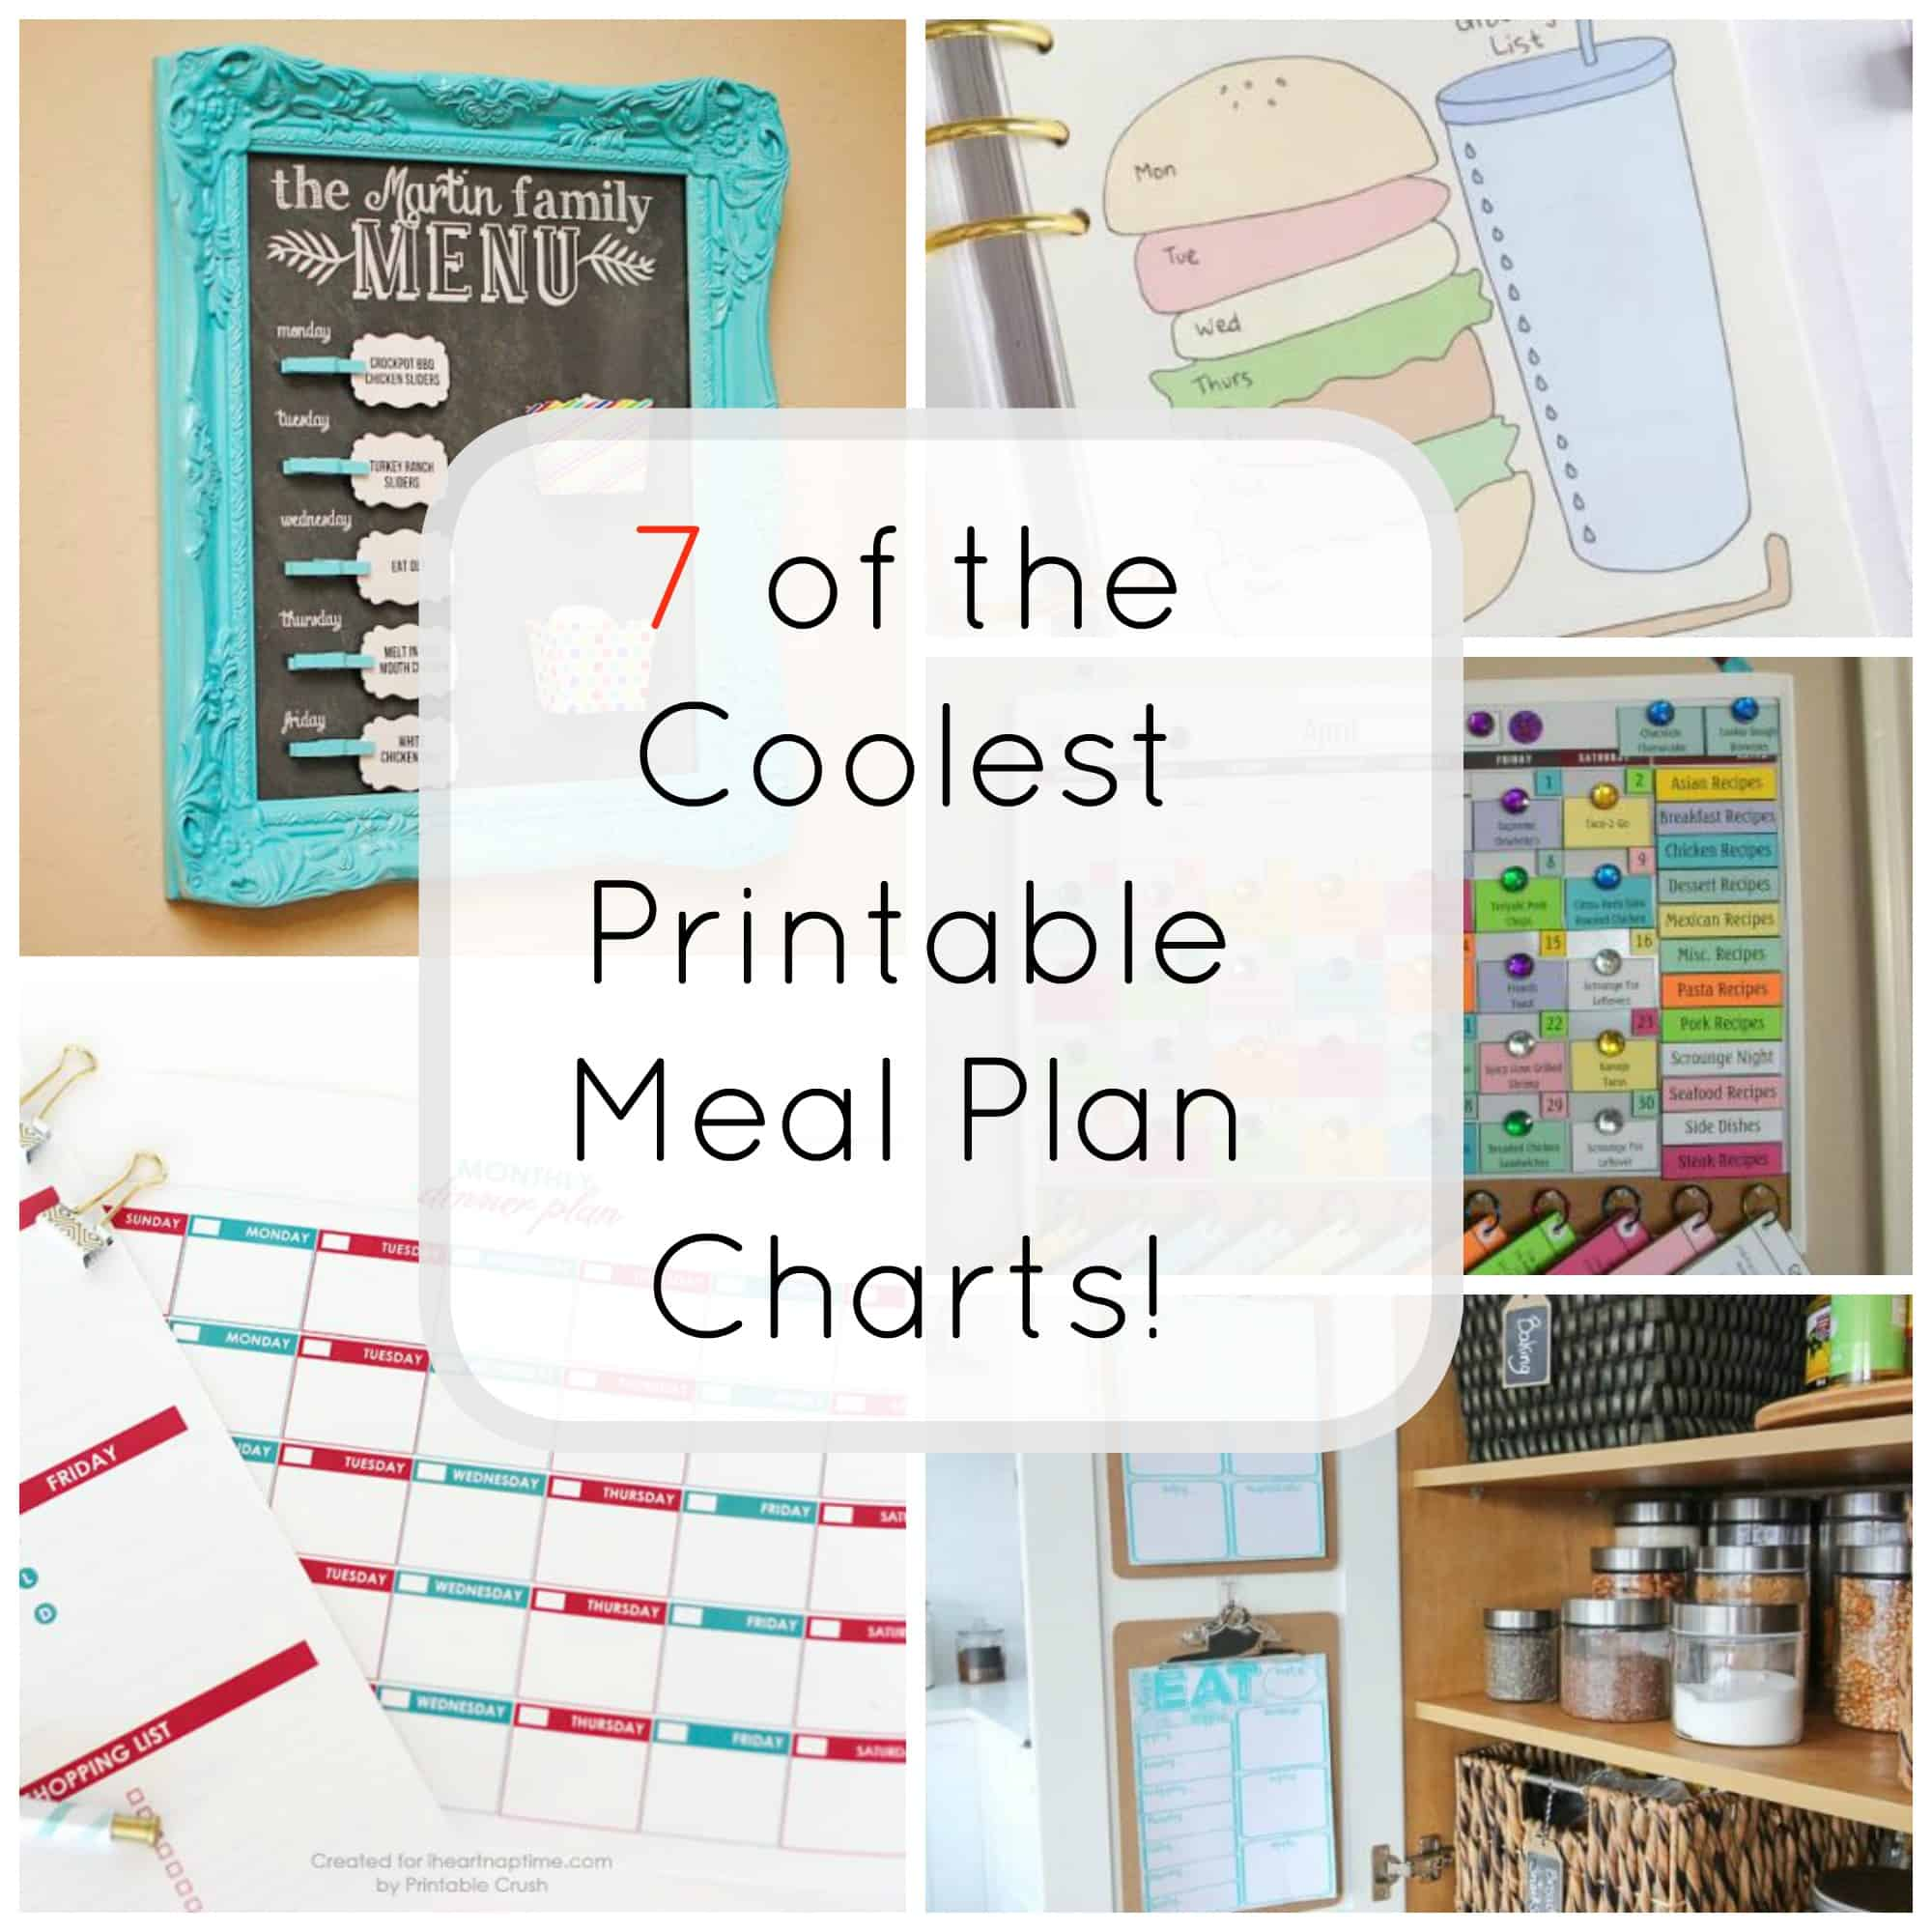 7 Printable Meal Plan Charts for Easy Dinner Ideas - The Organized Mom